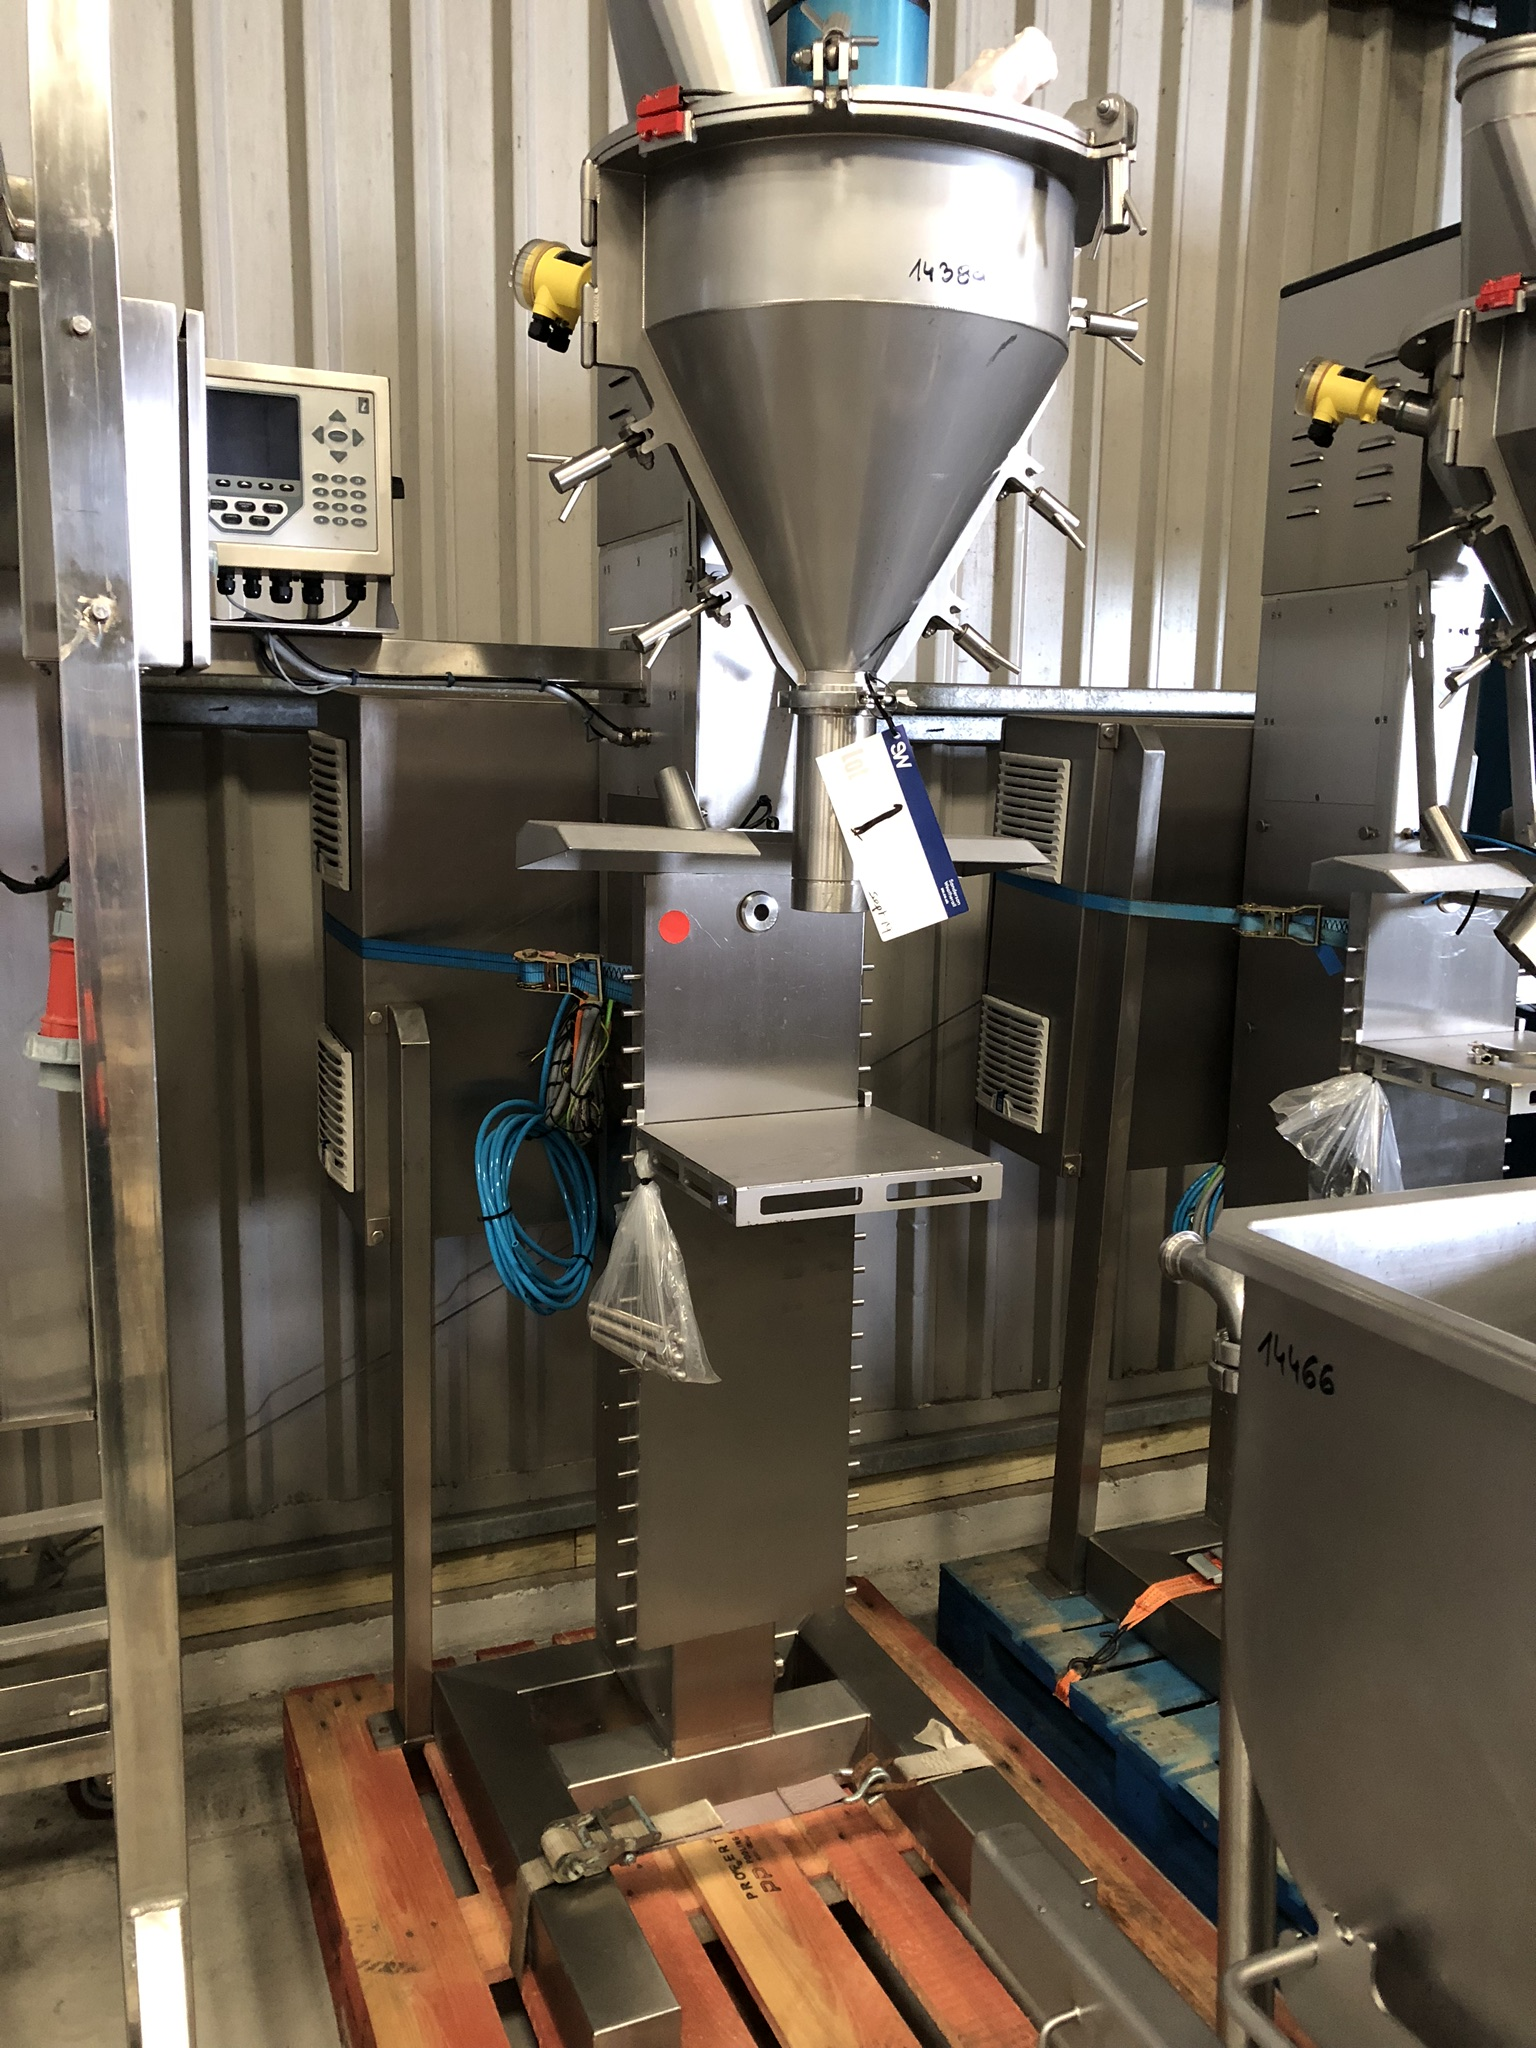 Applied Weighing POWDER FILLER, serial no. 141004, year of manufacture 2014, approx. 2.2m high x